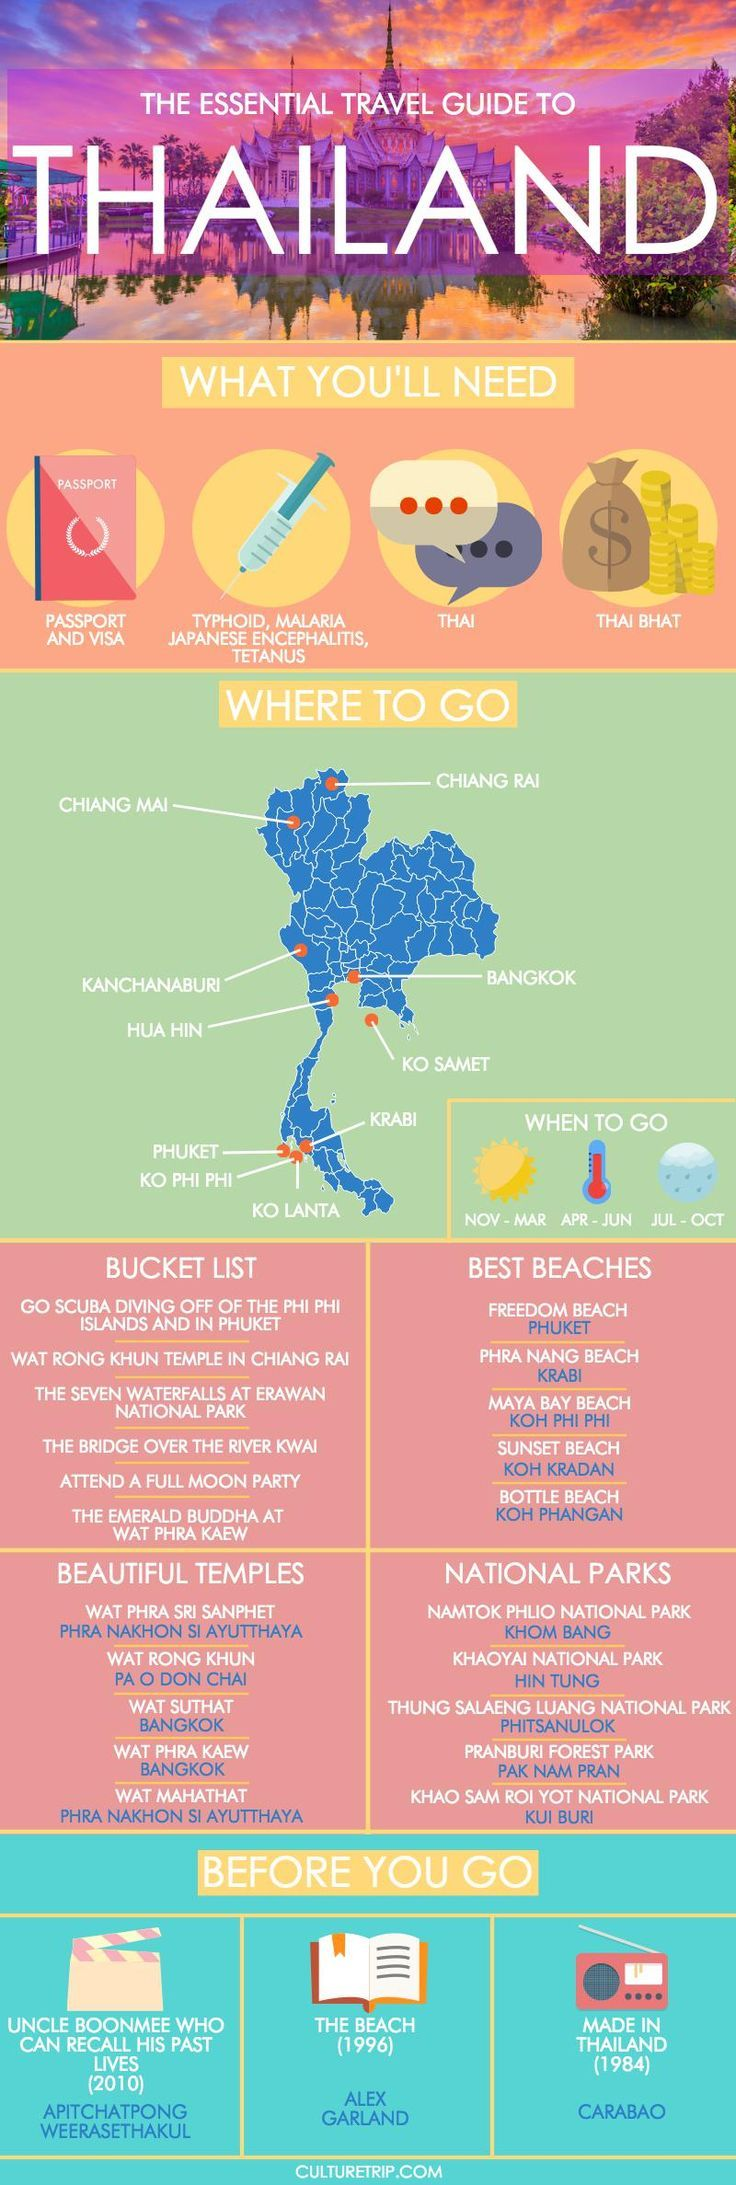 The Essential Travel Guide to Thailand (Infographic)|Pinterest: @theculturetrip